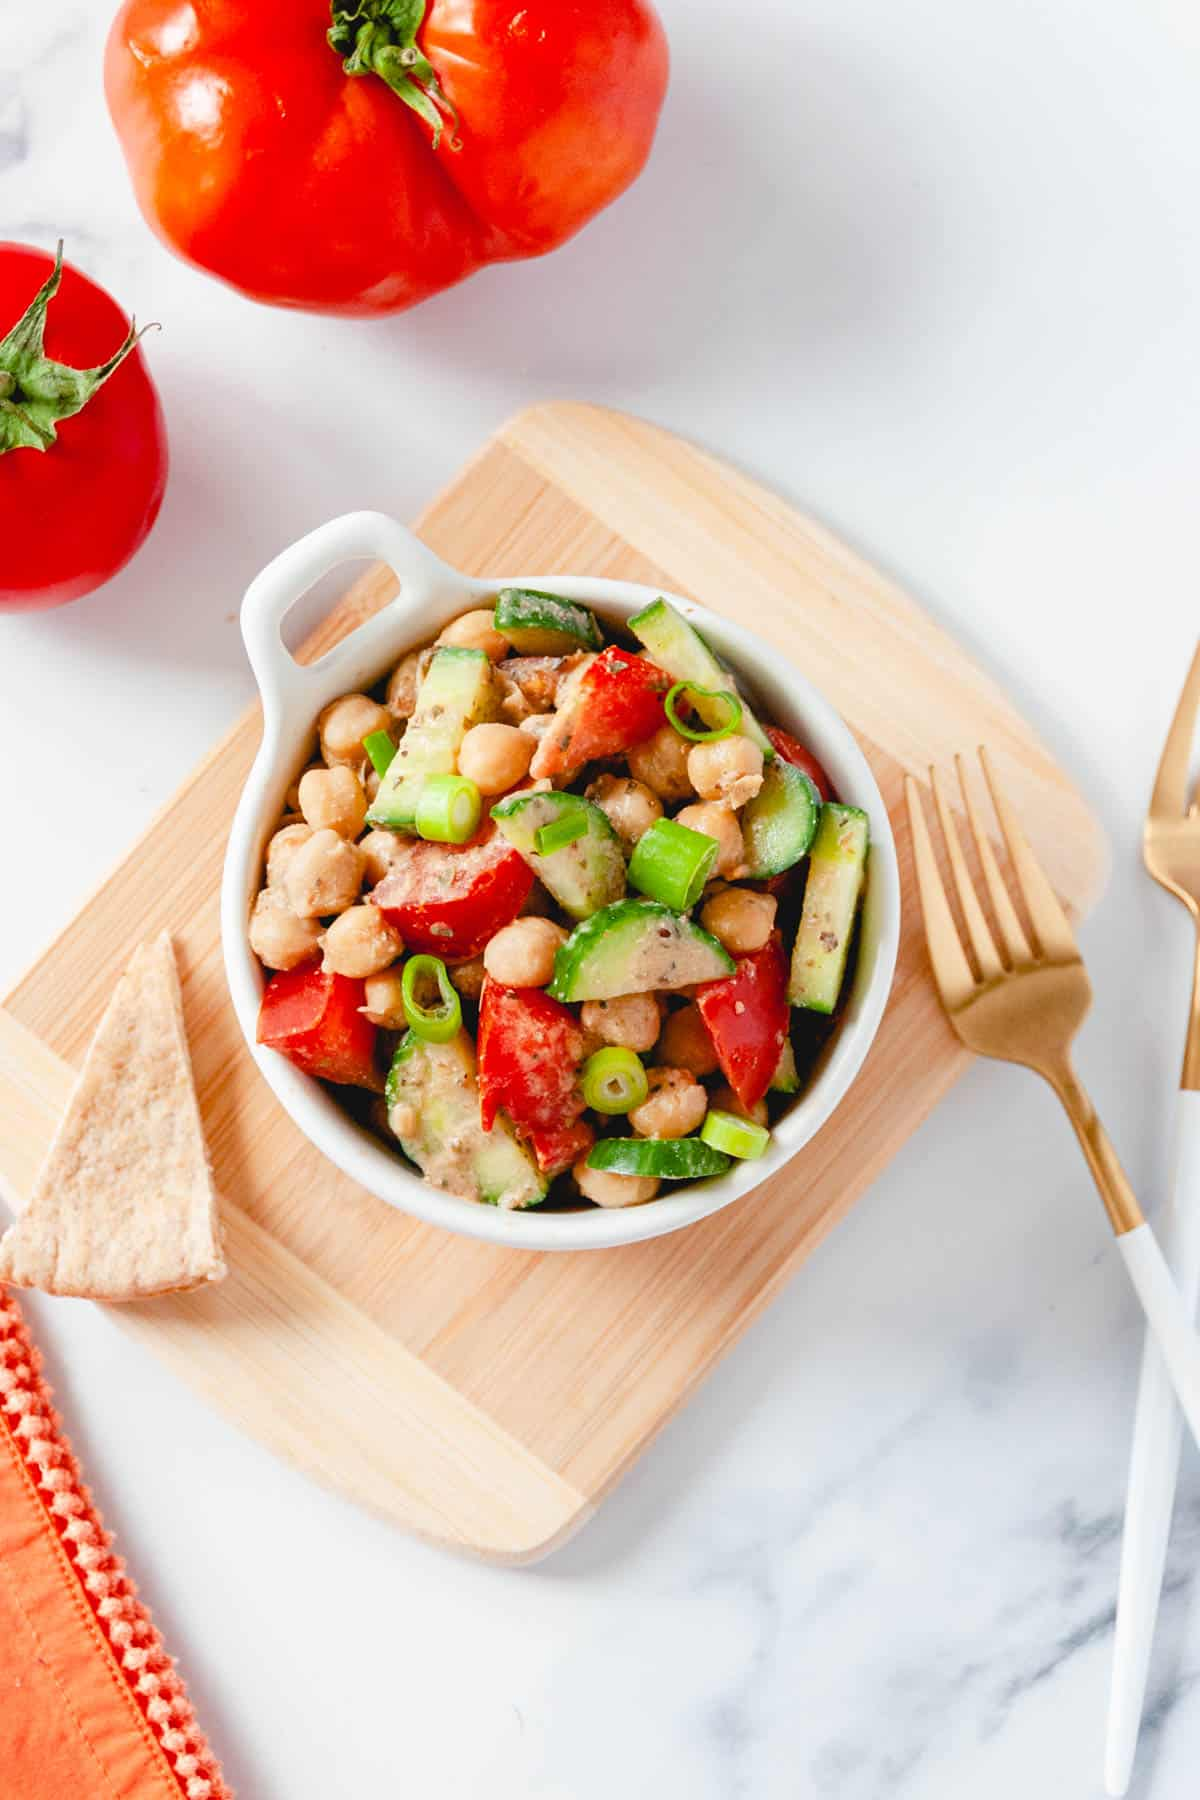 Bowl of balsamic chickpea salad, with pita bread, tomatoes, and forks on the side